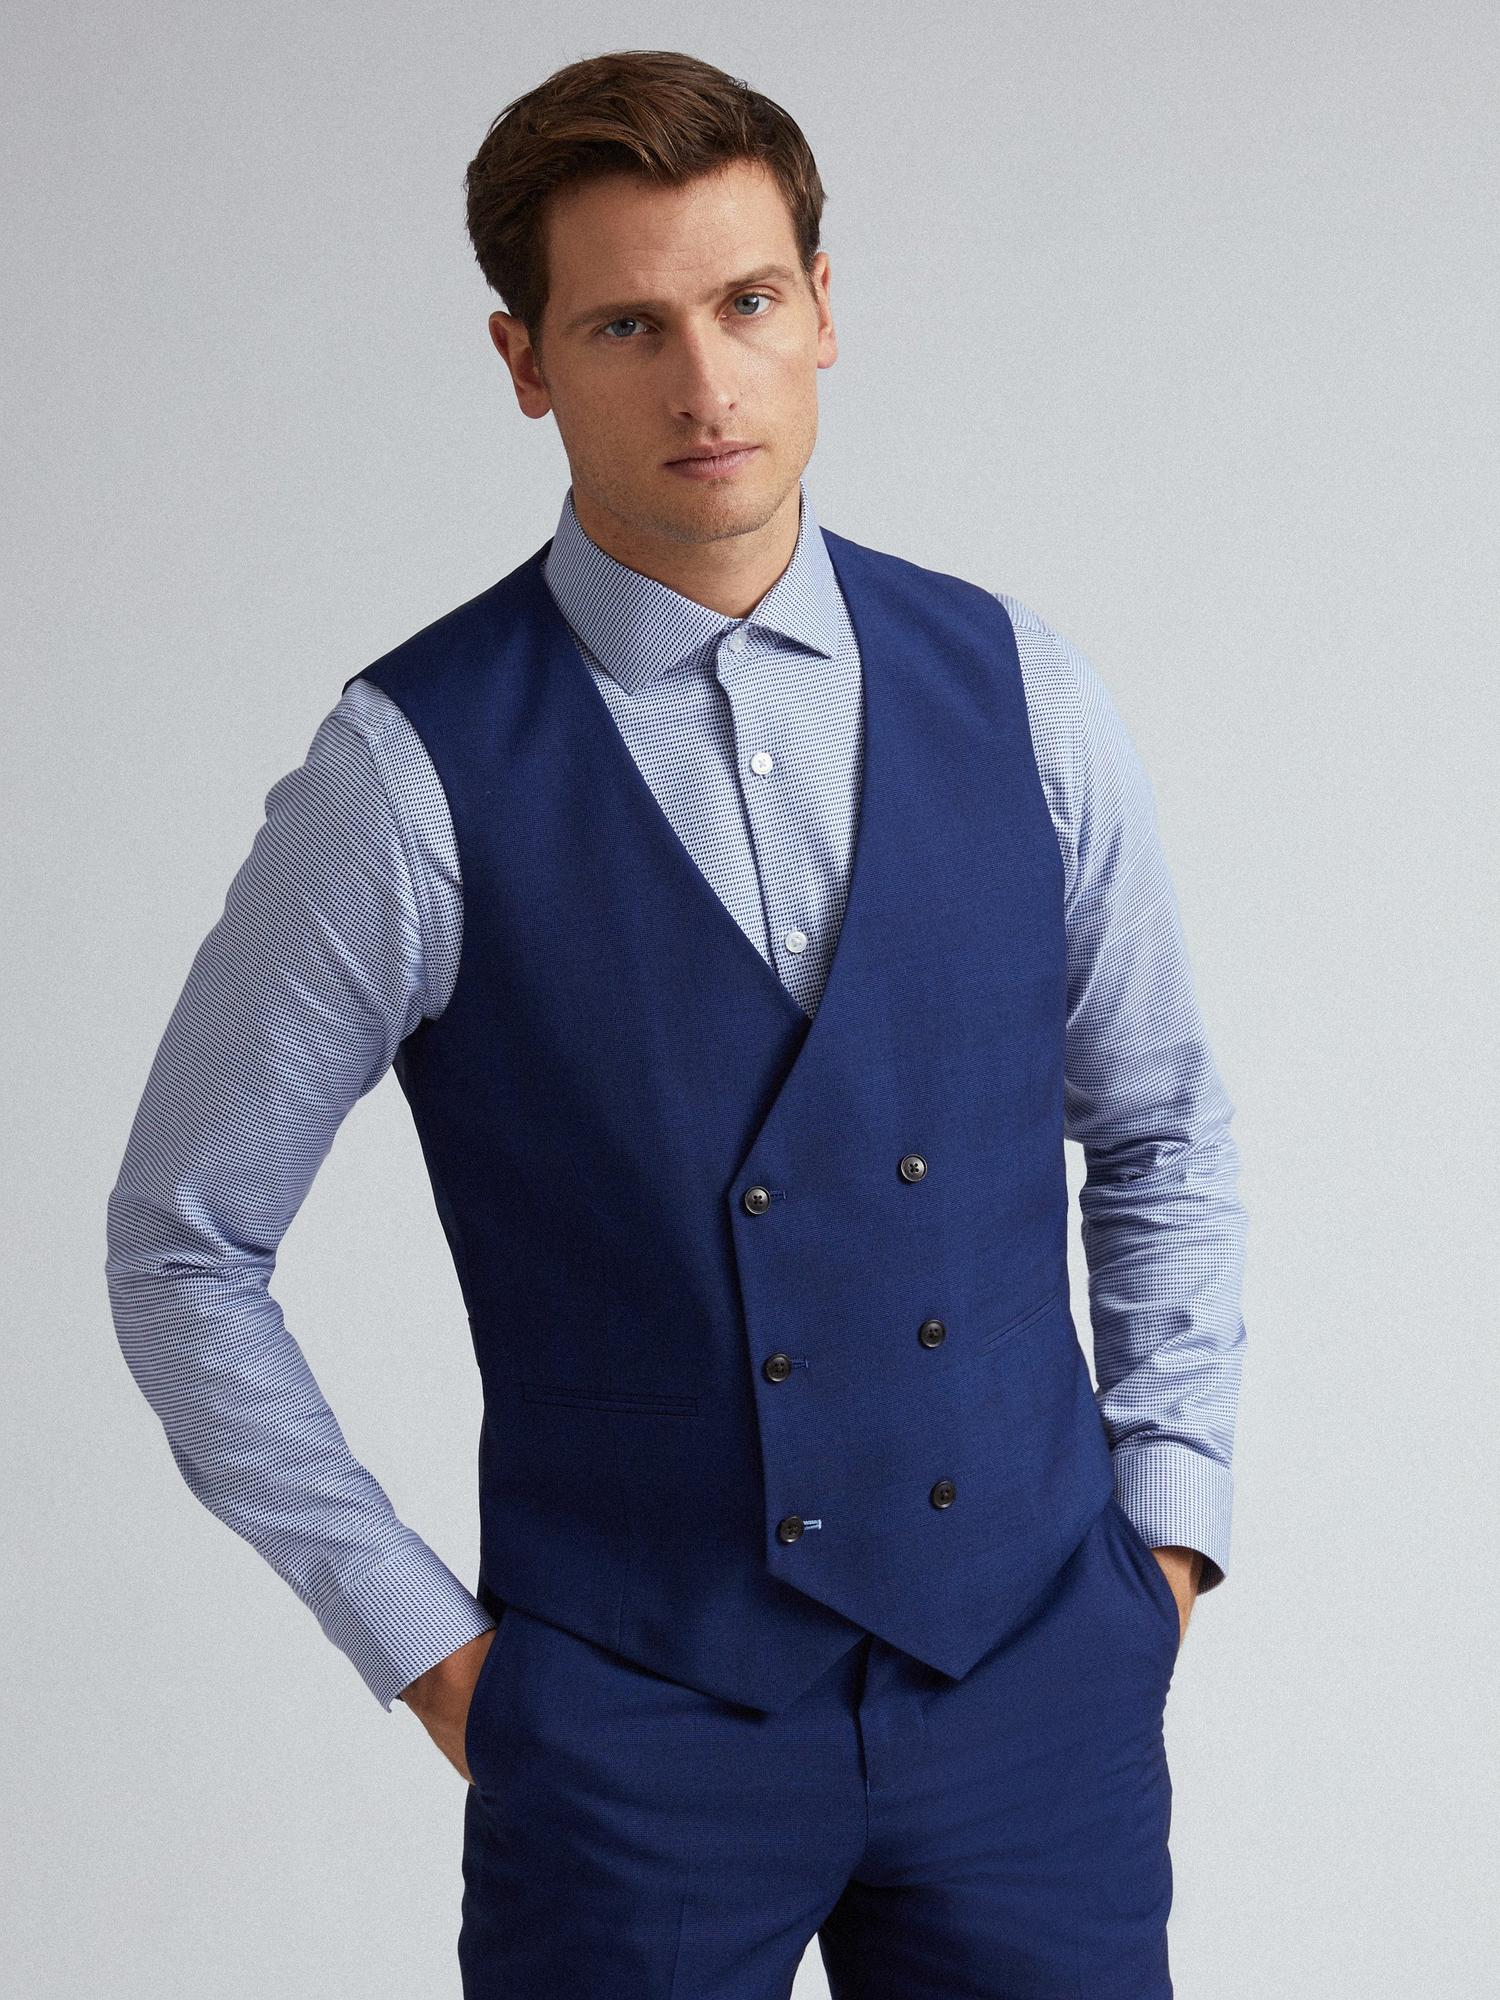 106 Blue Self Check Tailored Fit Suit Waistcoat image number 1